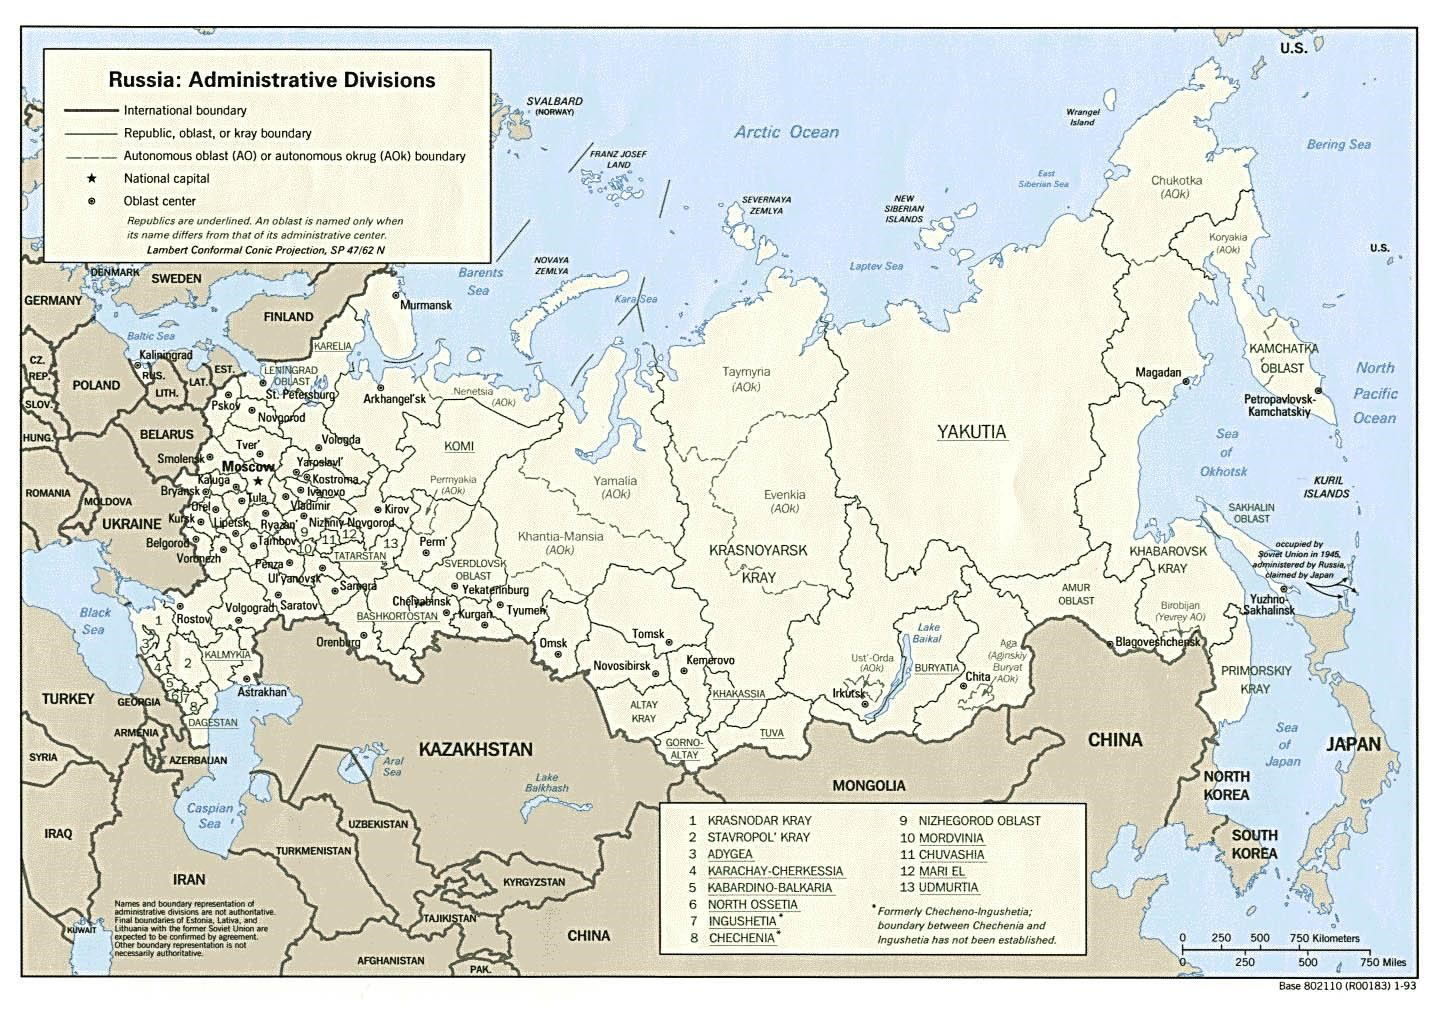 political-and-administrative-map-of-russia-with-major-cities.jpg